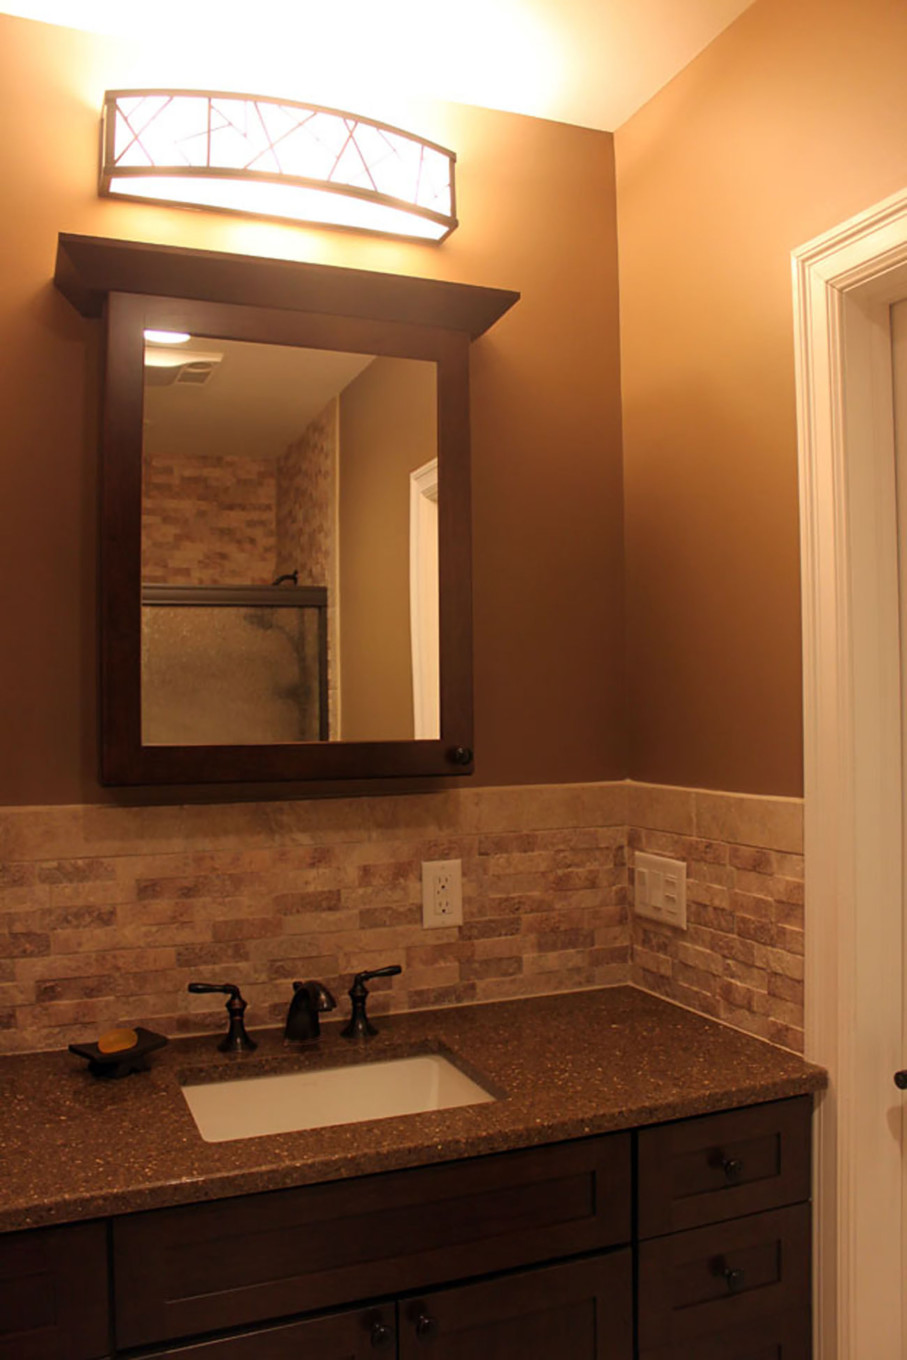 Deep Earth Tones on Wall to Enhance Guest Bathroom